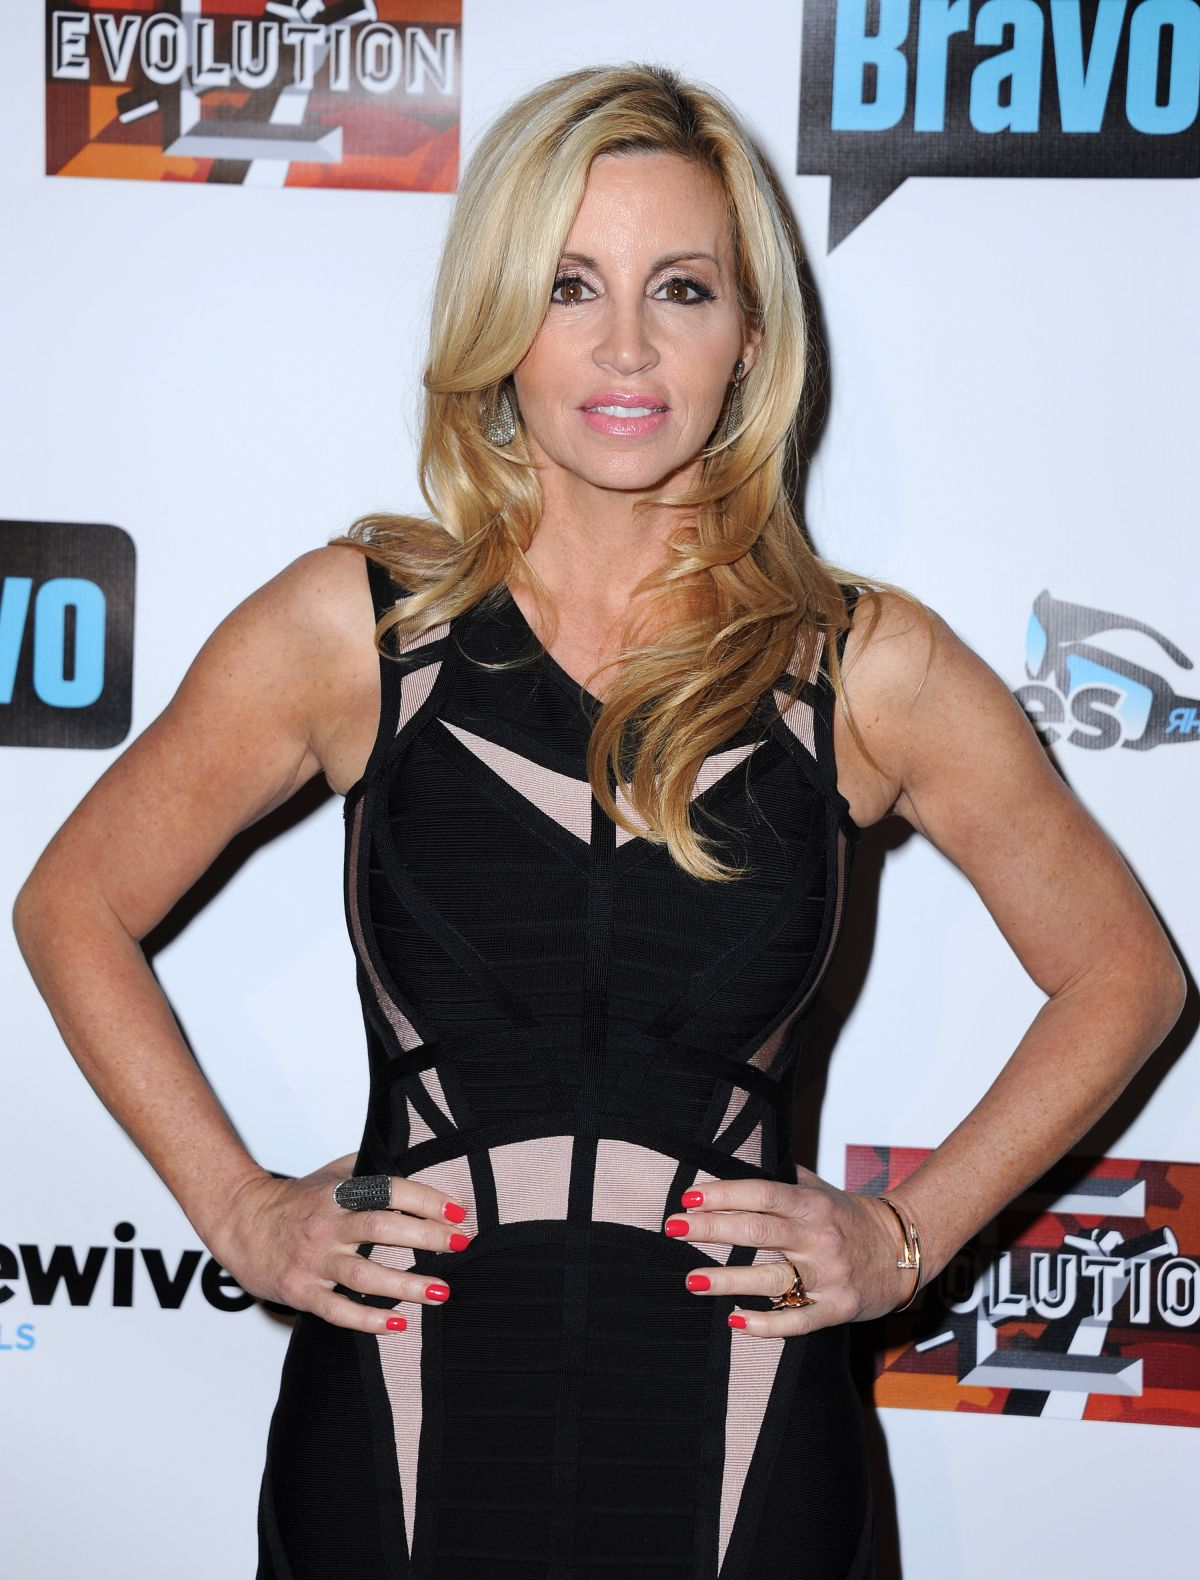 CAMILLE GRAMMER at The Real Housewives of Beverly Hills, Season 6 Premiere Party in Hollywood 12/03/2015